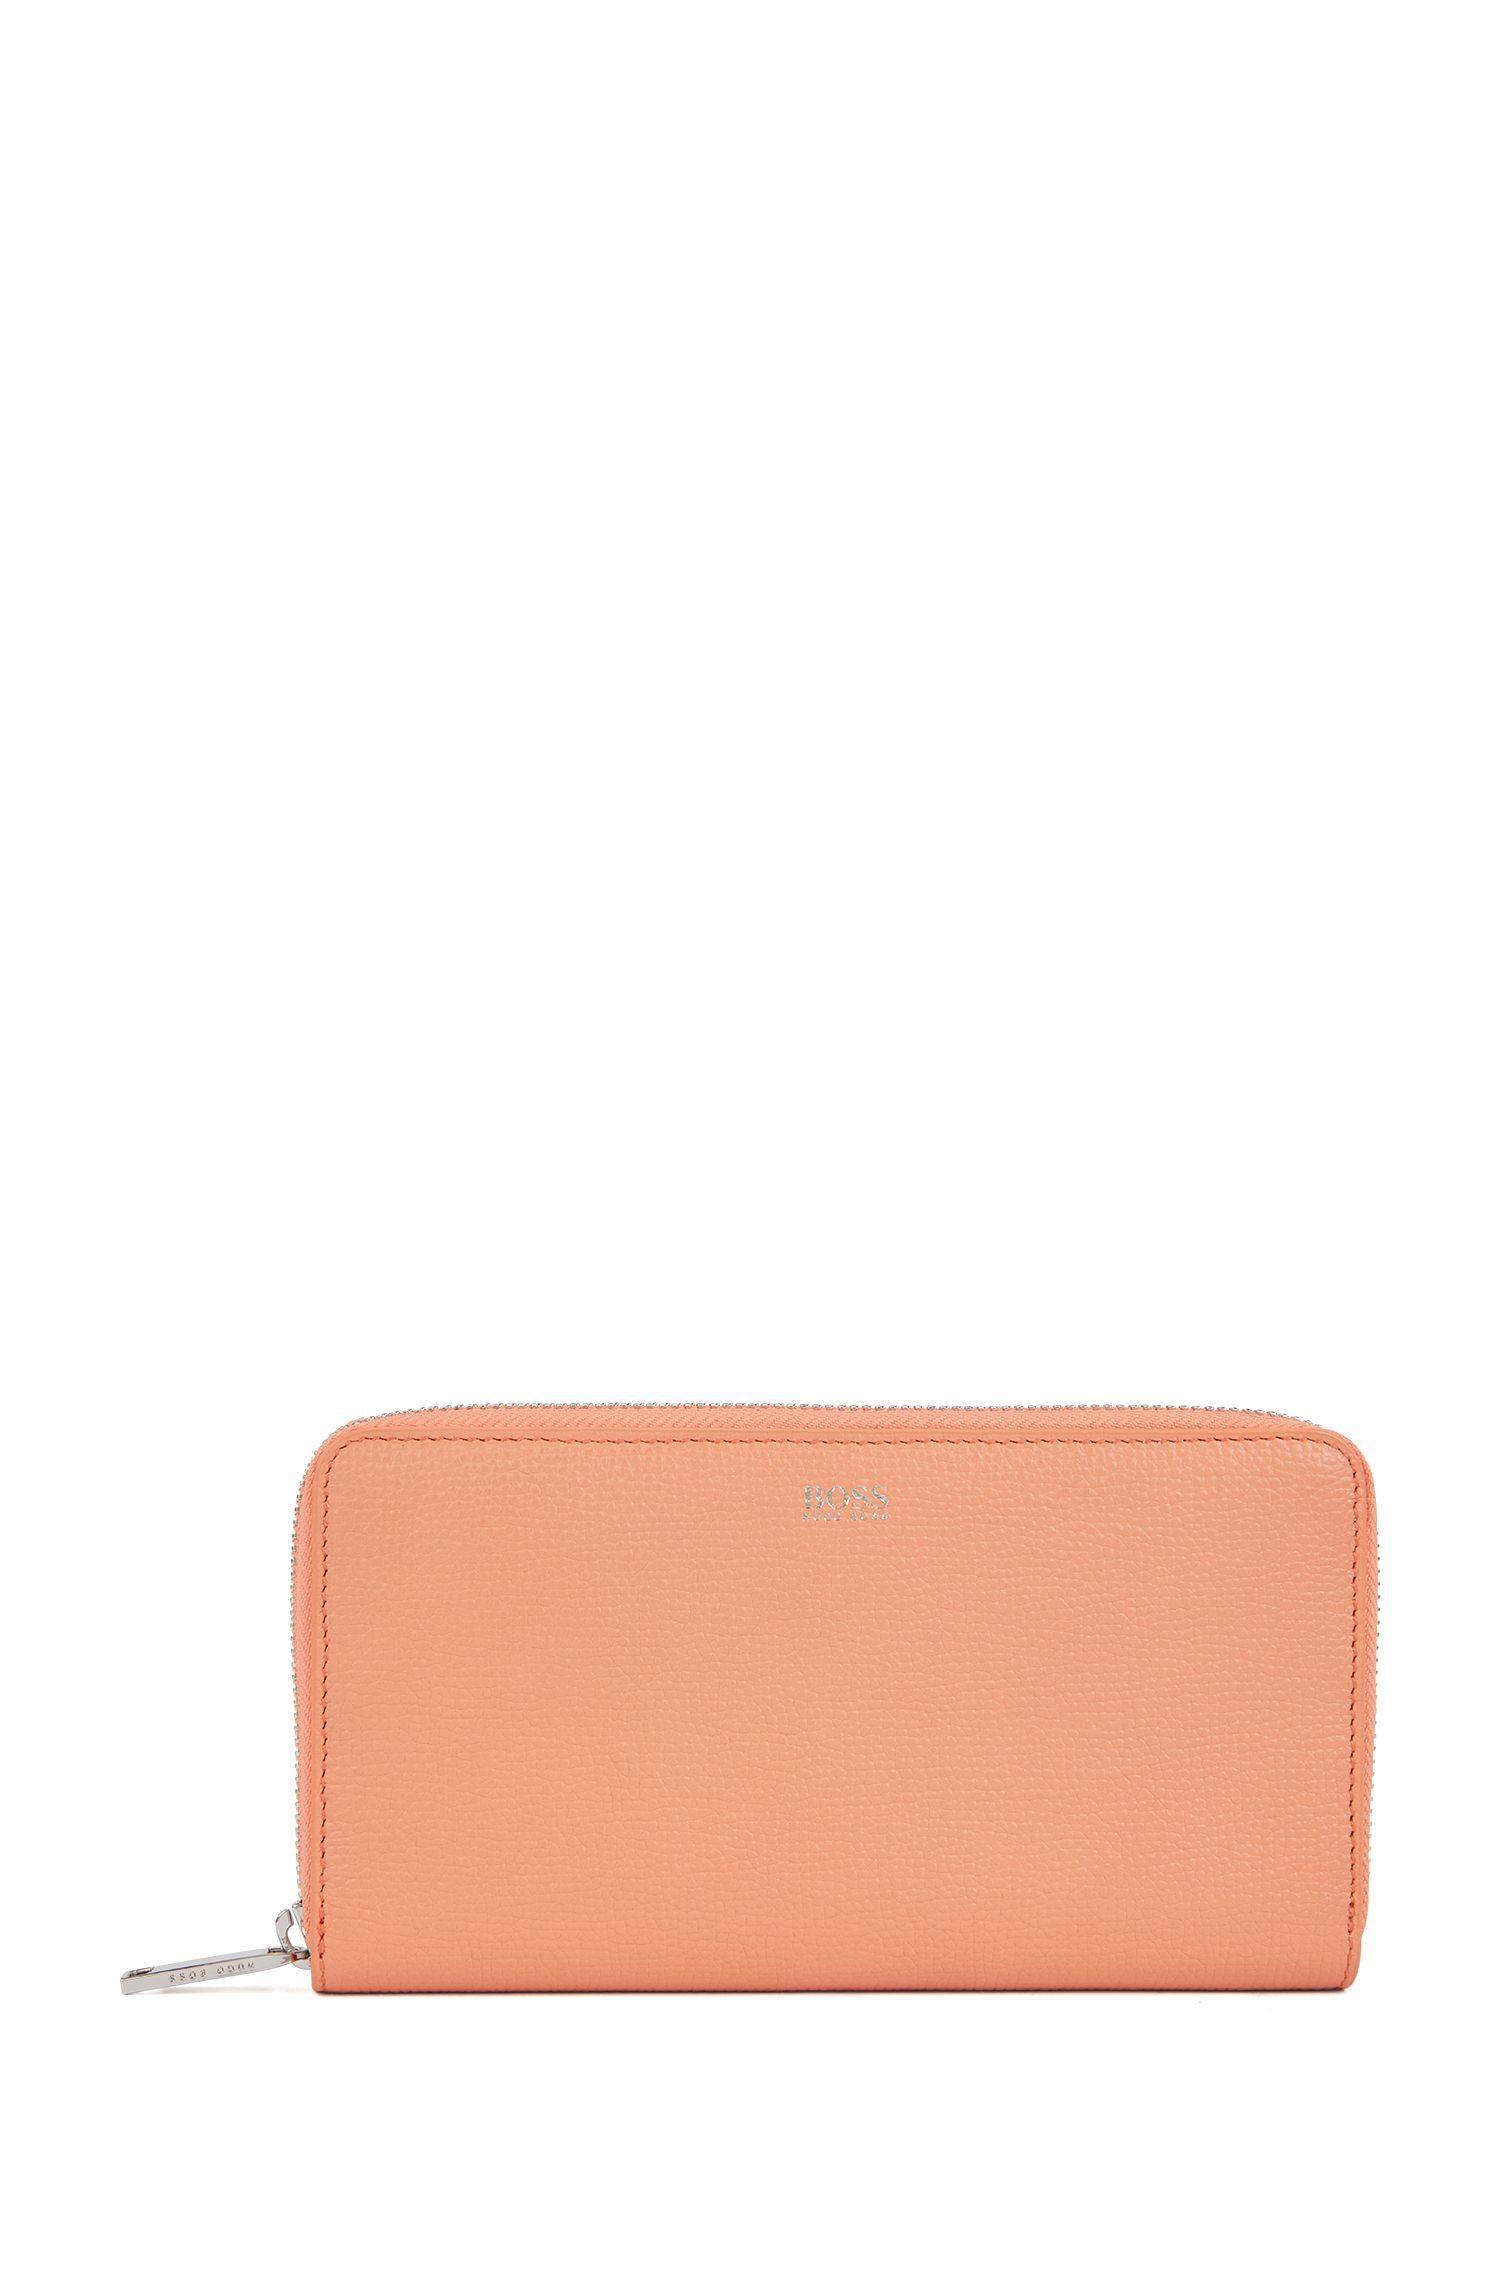 Zip-around wallet in grained Italian leather, Orange